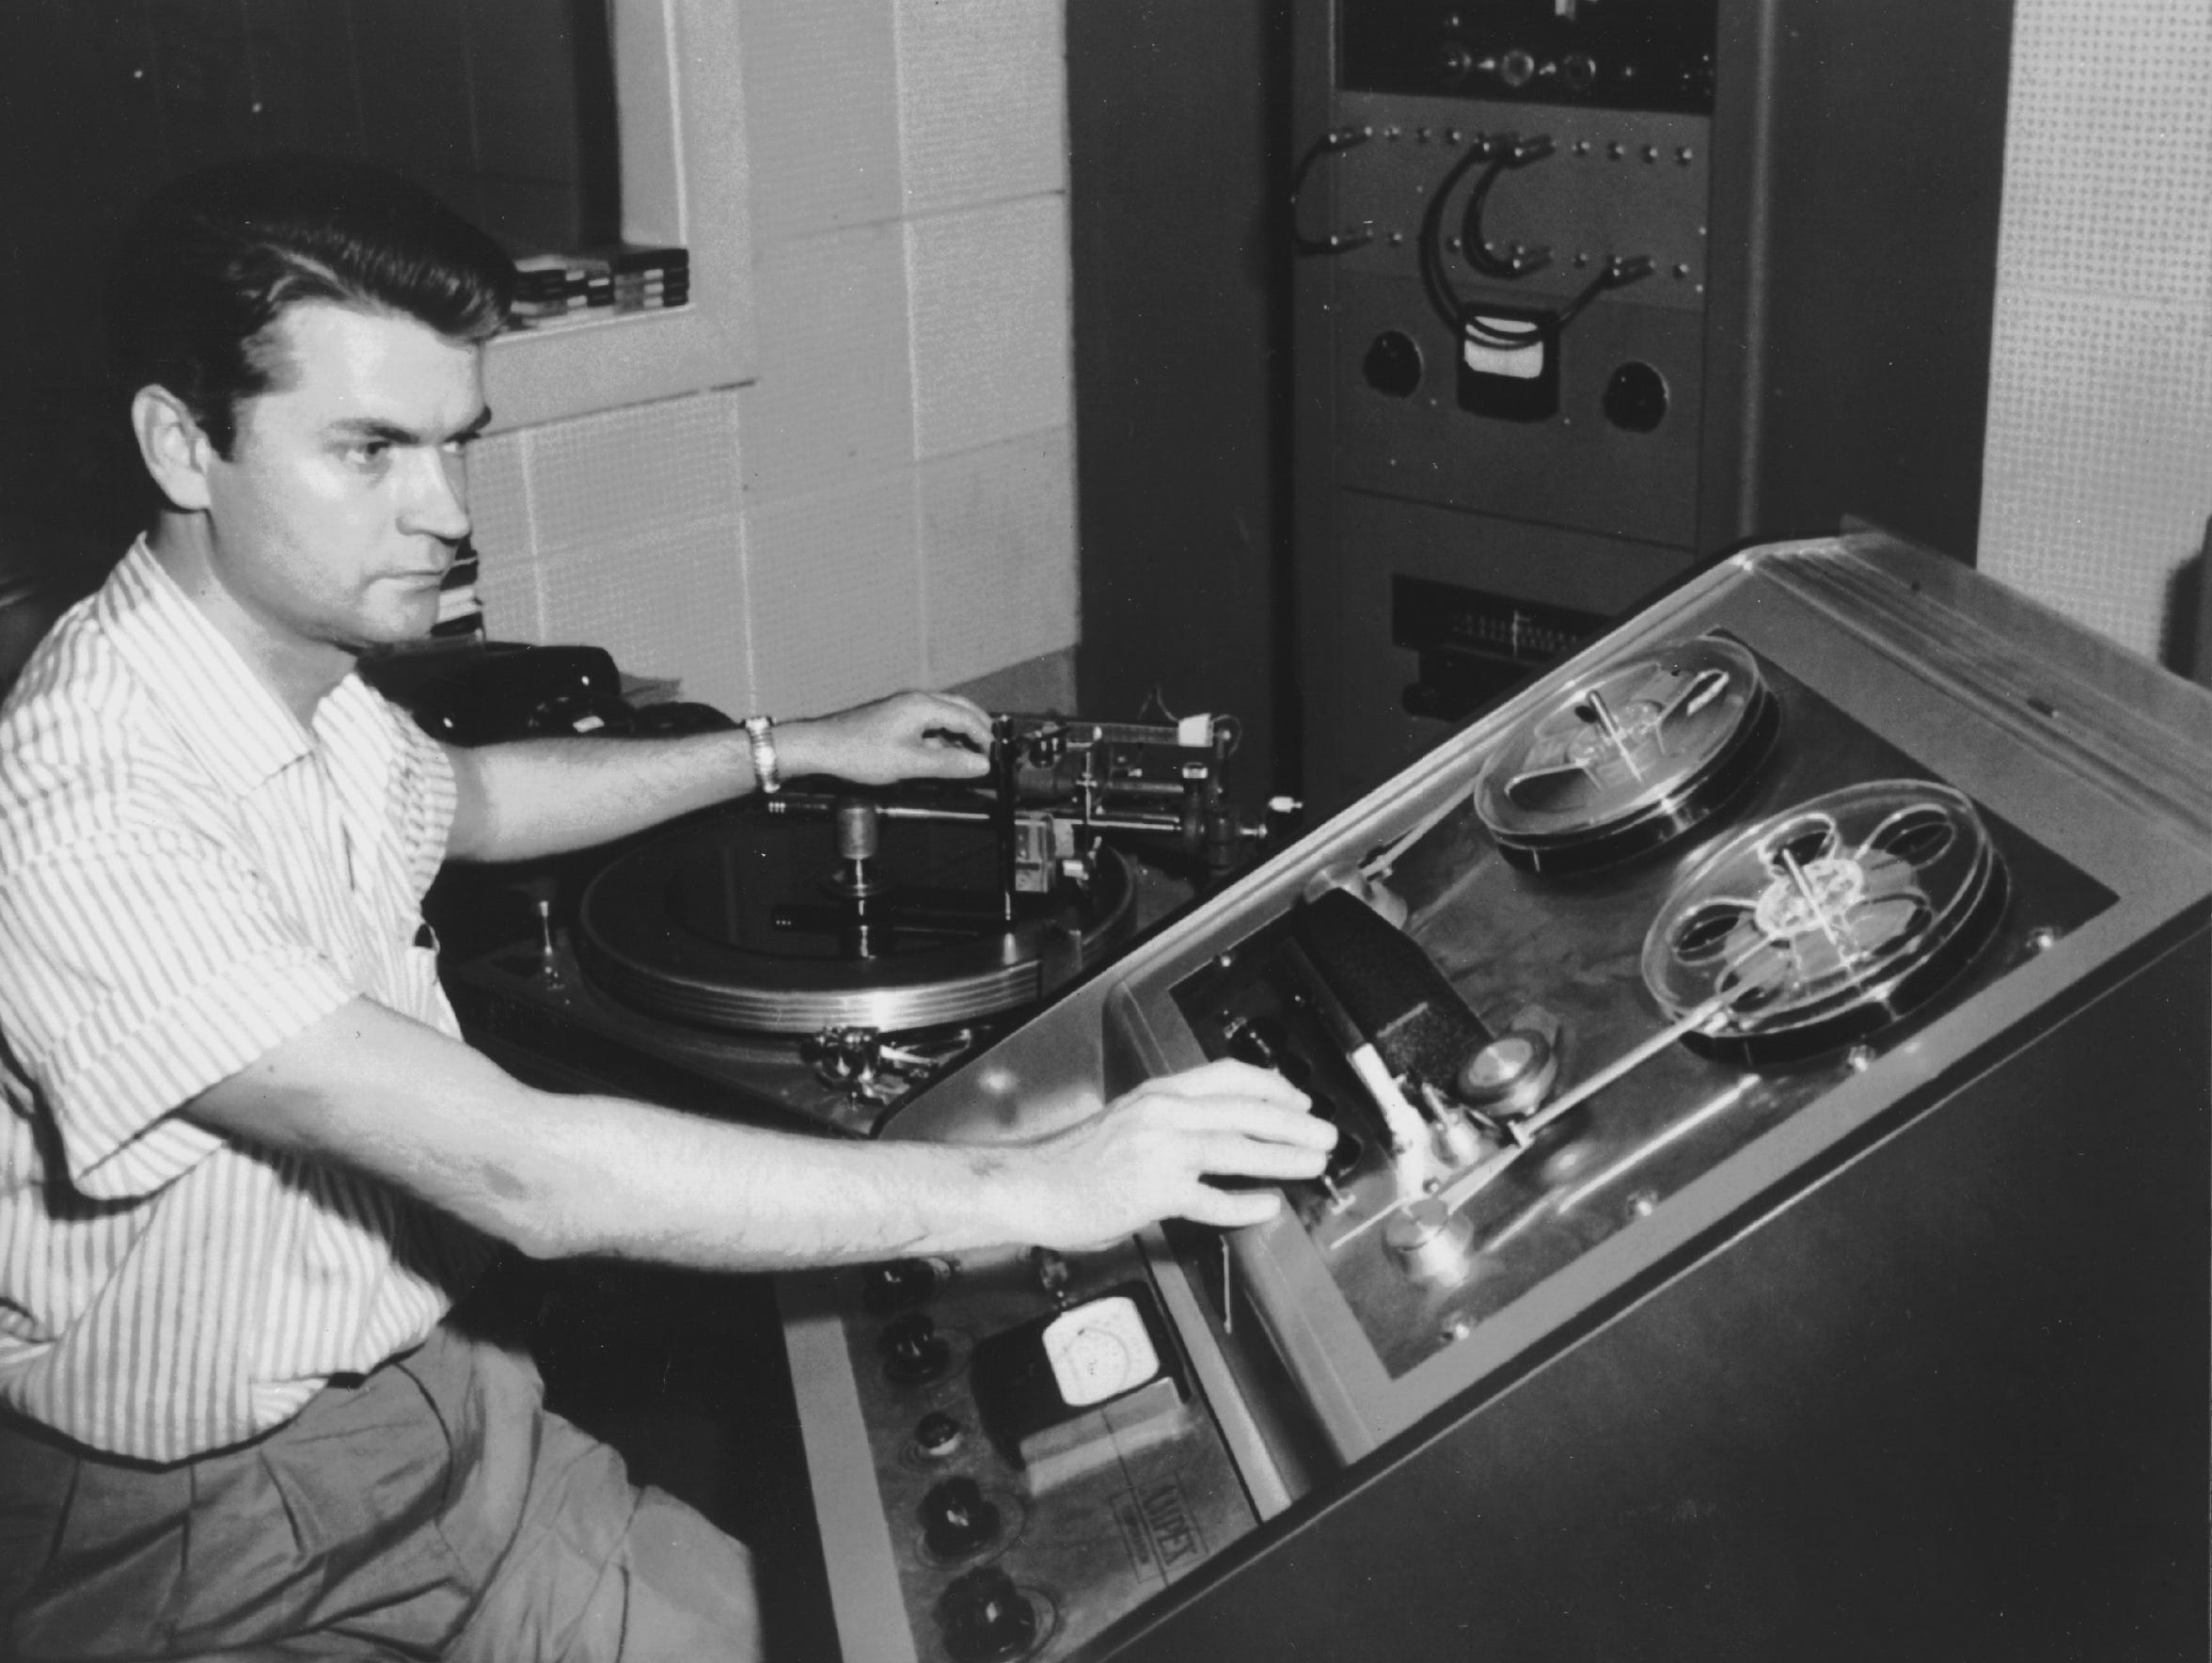 Sam Phillips at Sun Studio in an undated photograph.